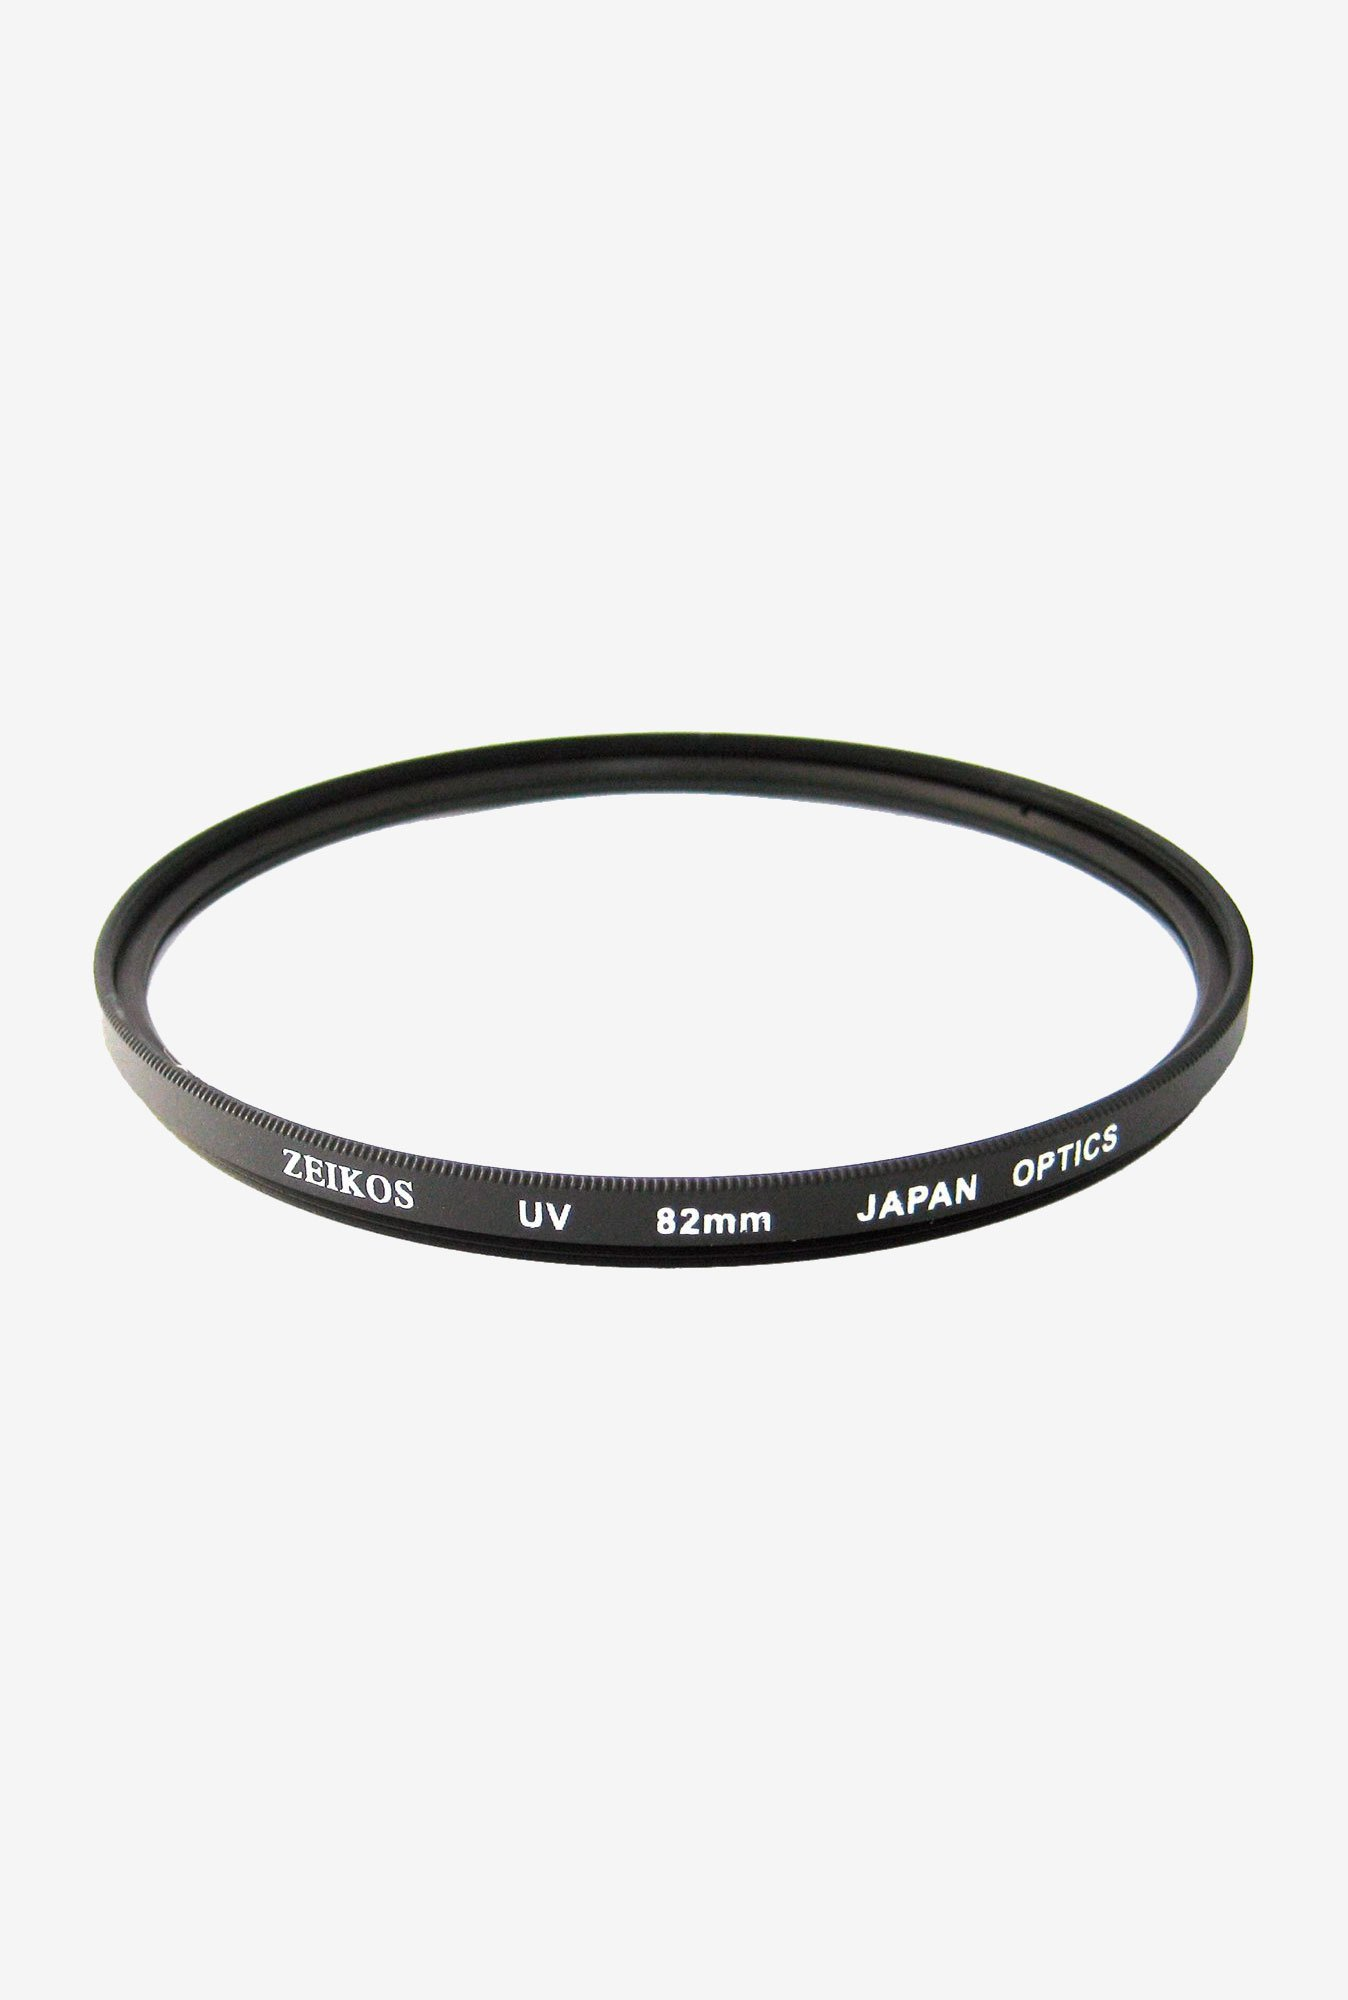 Zeikos Multi-Coated ZE-UV82 UV Filter